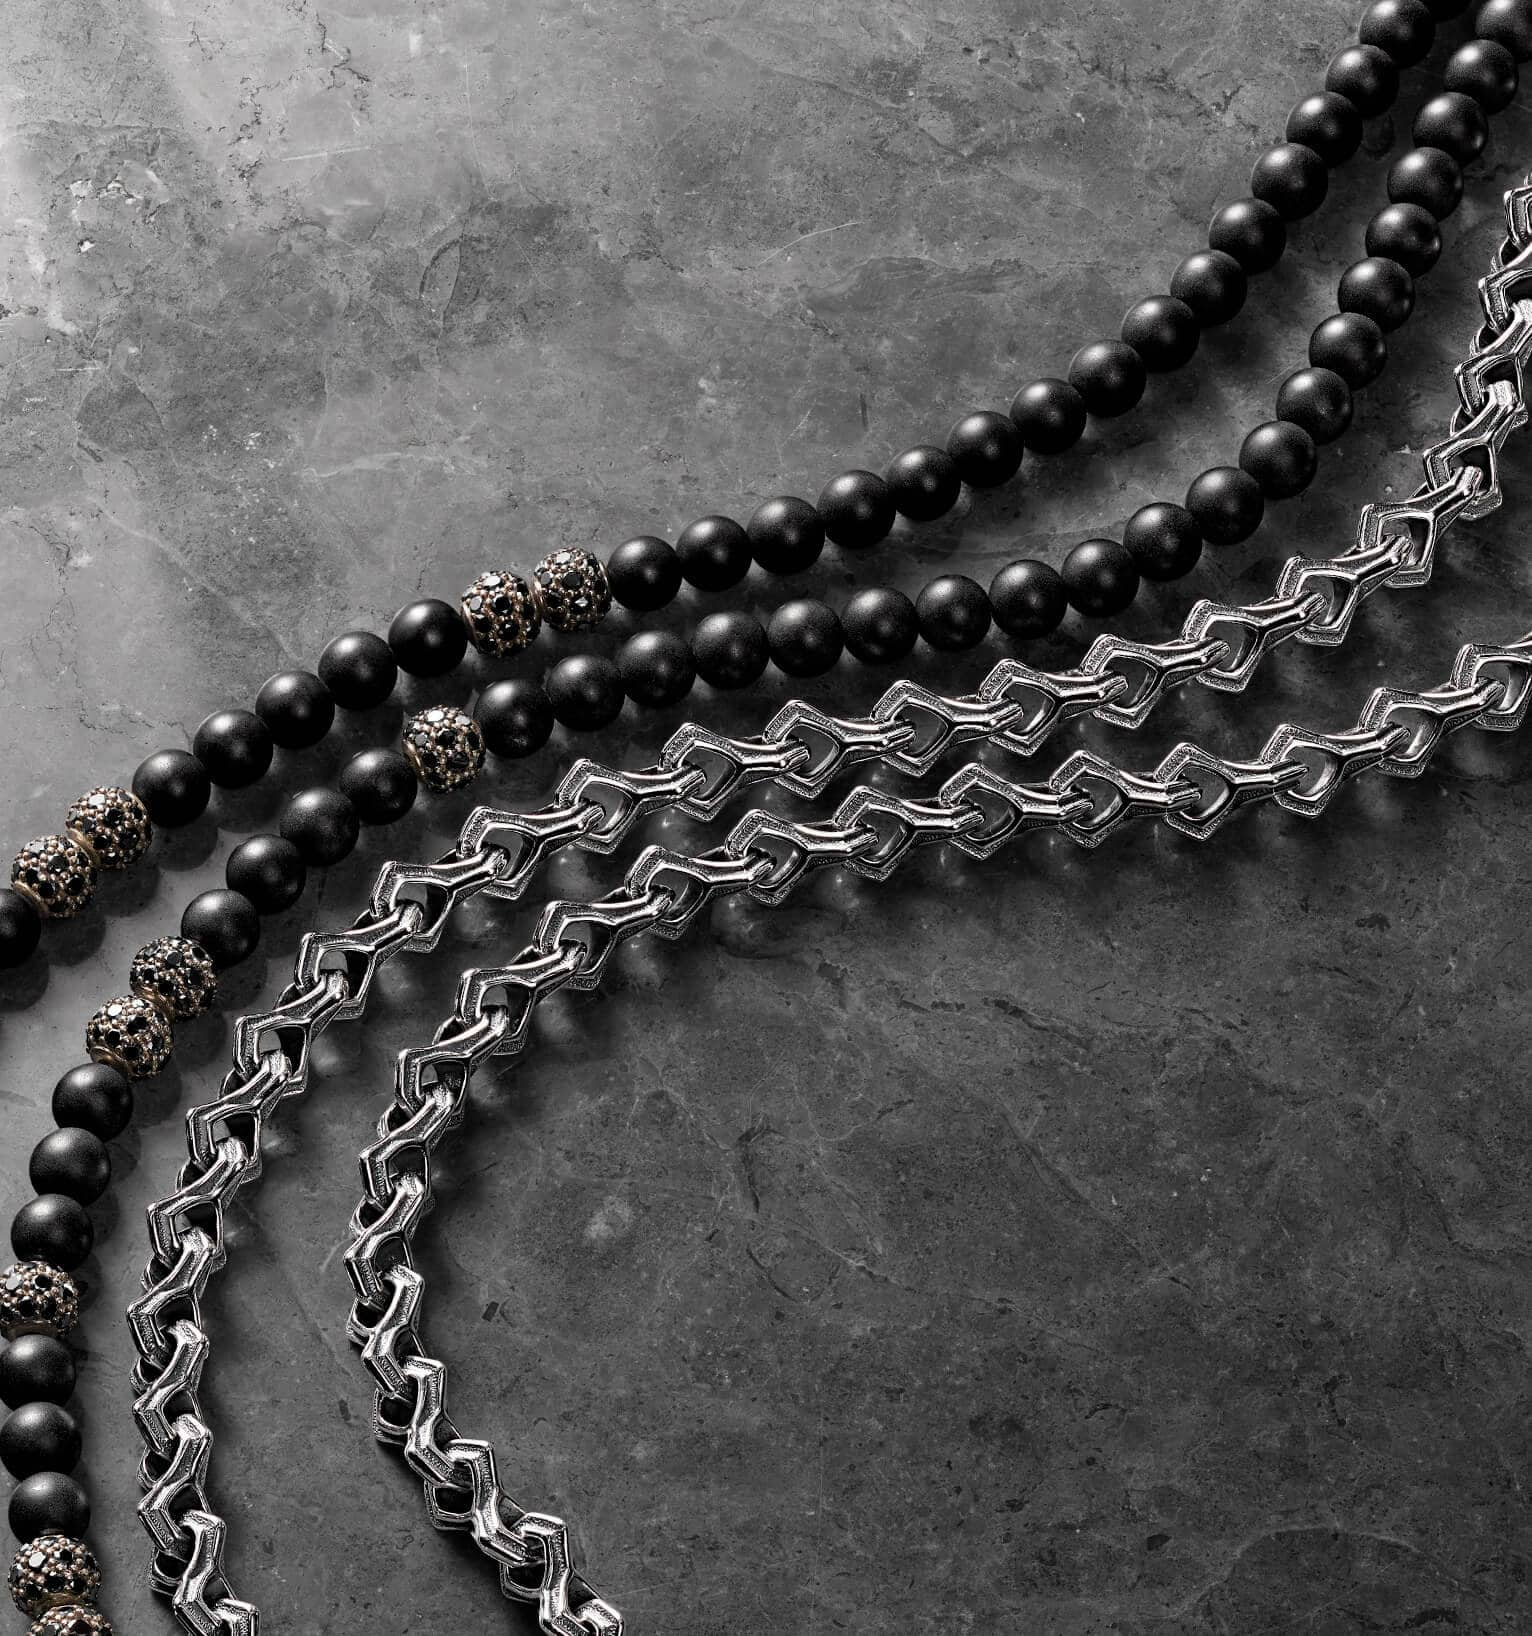 A color photograph shows four David Yurman men's necklaces from the Spiritual Beads and Armory collections arranged in a row atop a grey marble surface. Two chain necklaces are crafted from sterling silver, two necklaces are crafted from sterling silver with black onyx beads and black diamond accents.